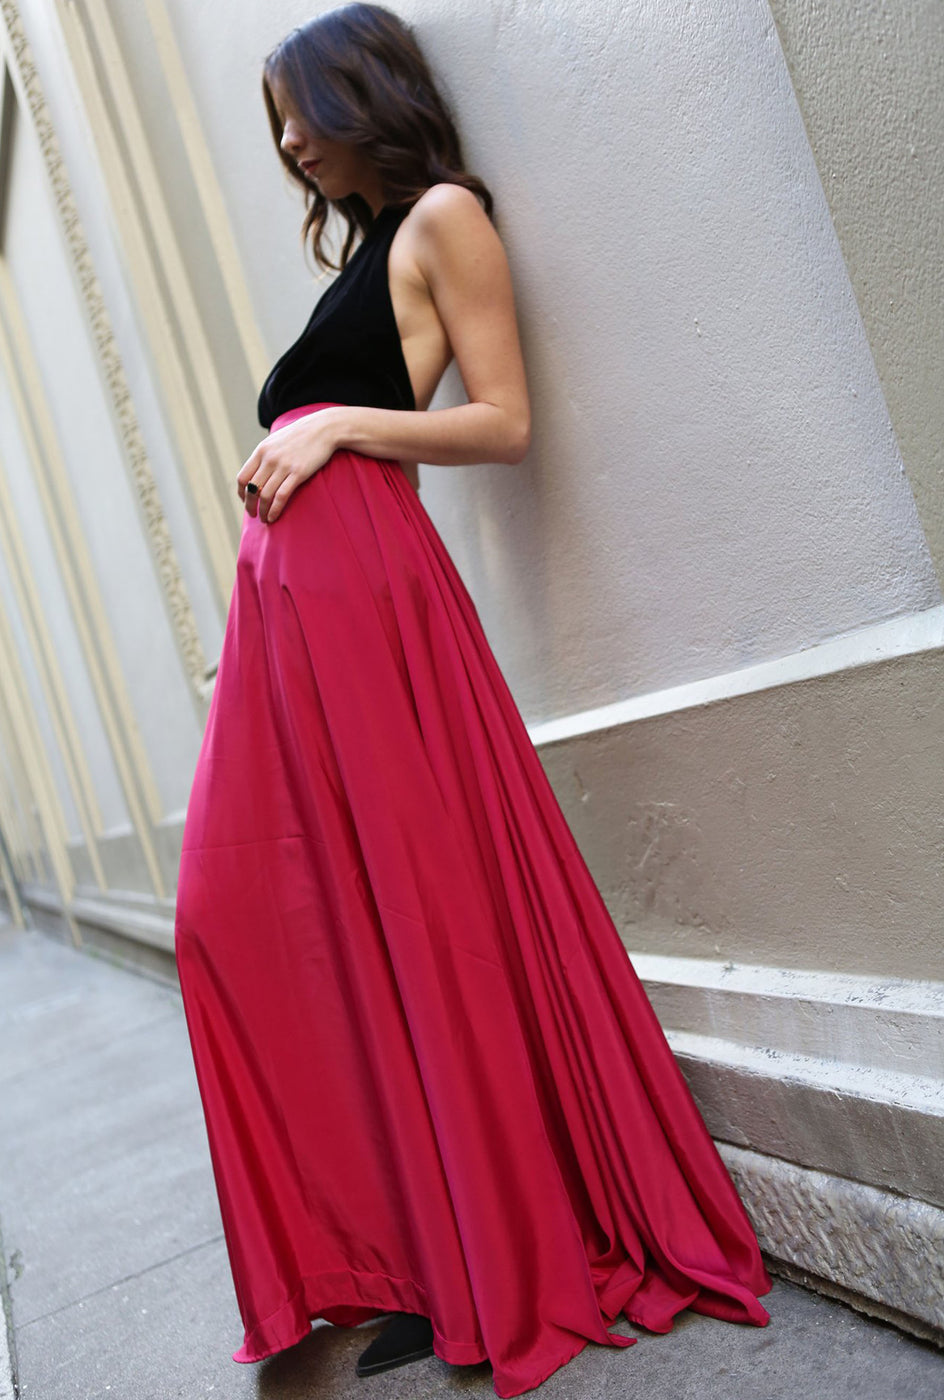 Lulu pink high-waist slit skirt